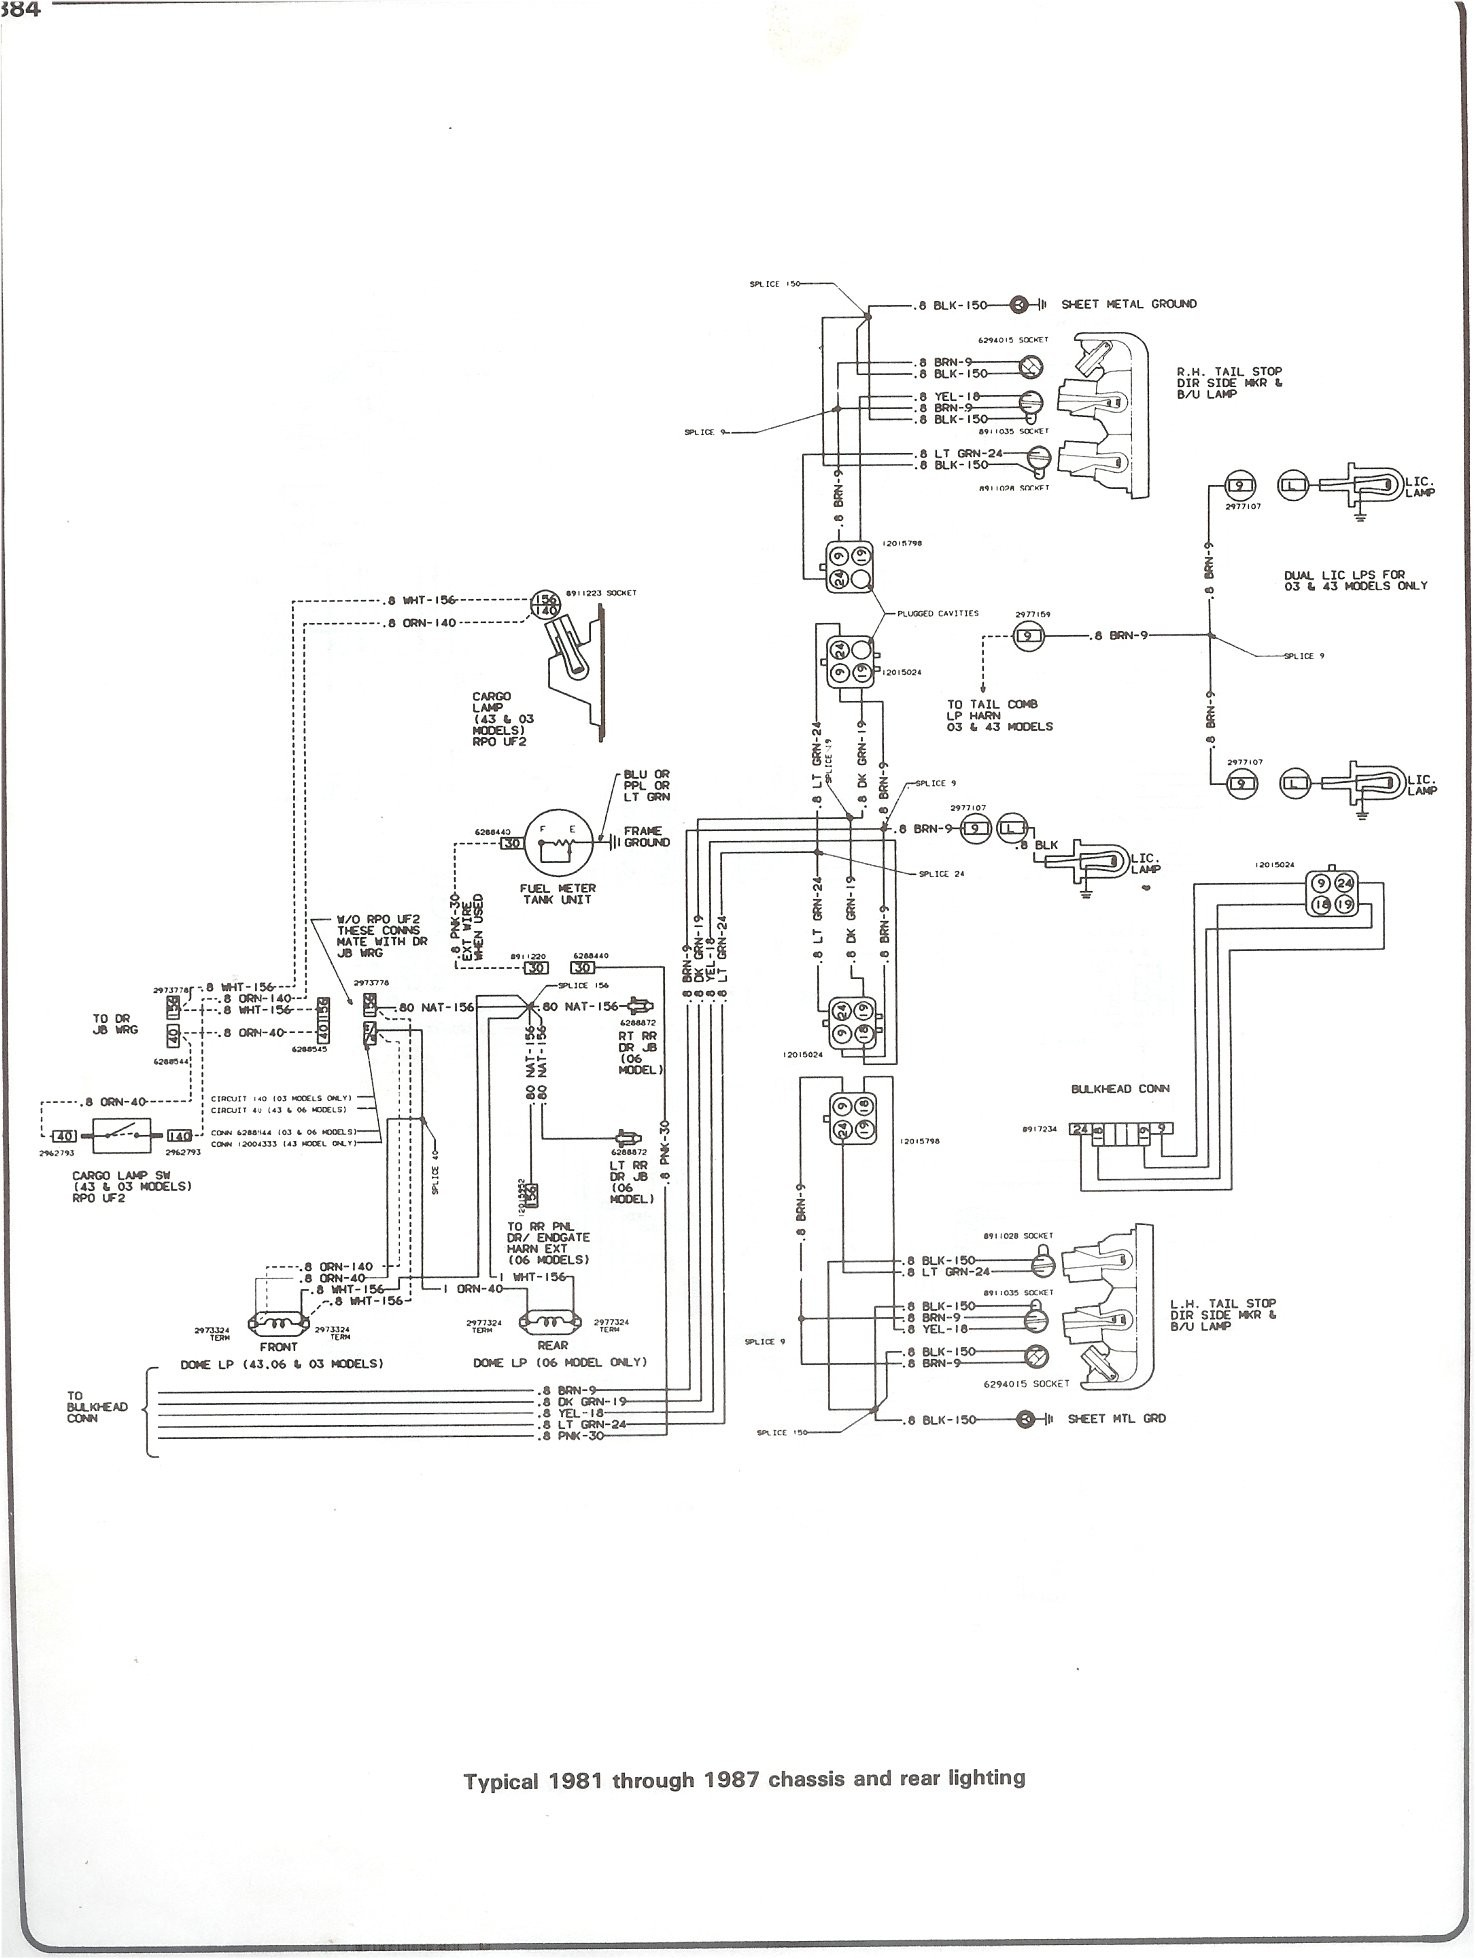 wiring courtesy lamp diagram for 82 chevy truck schematic